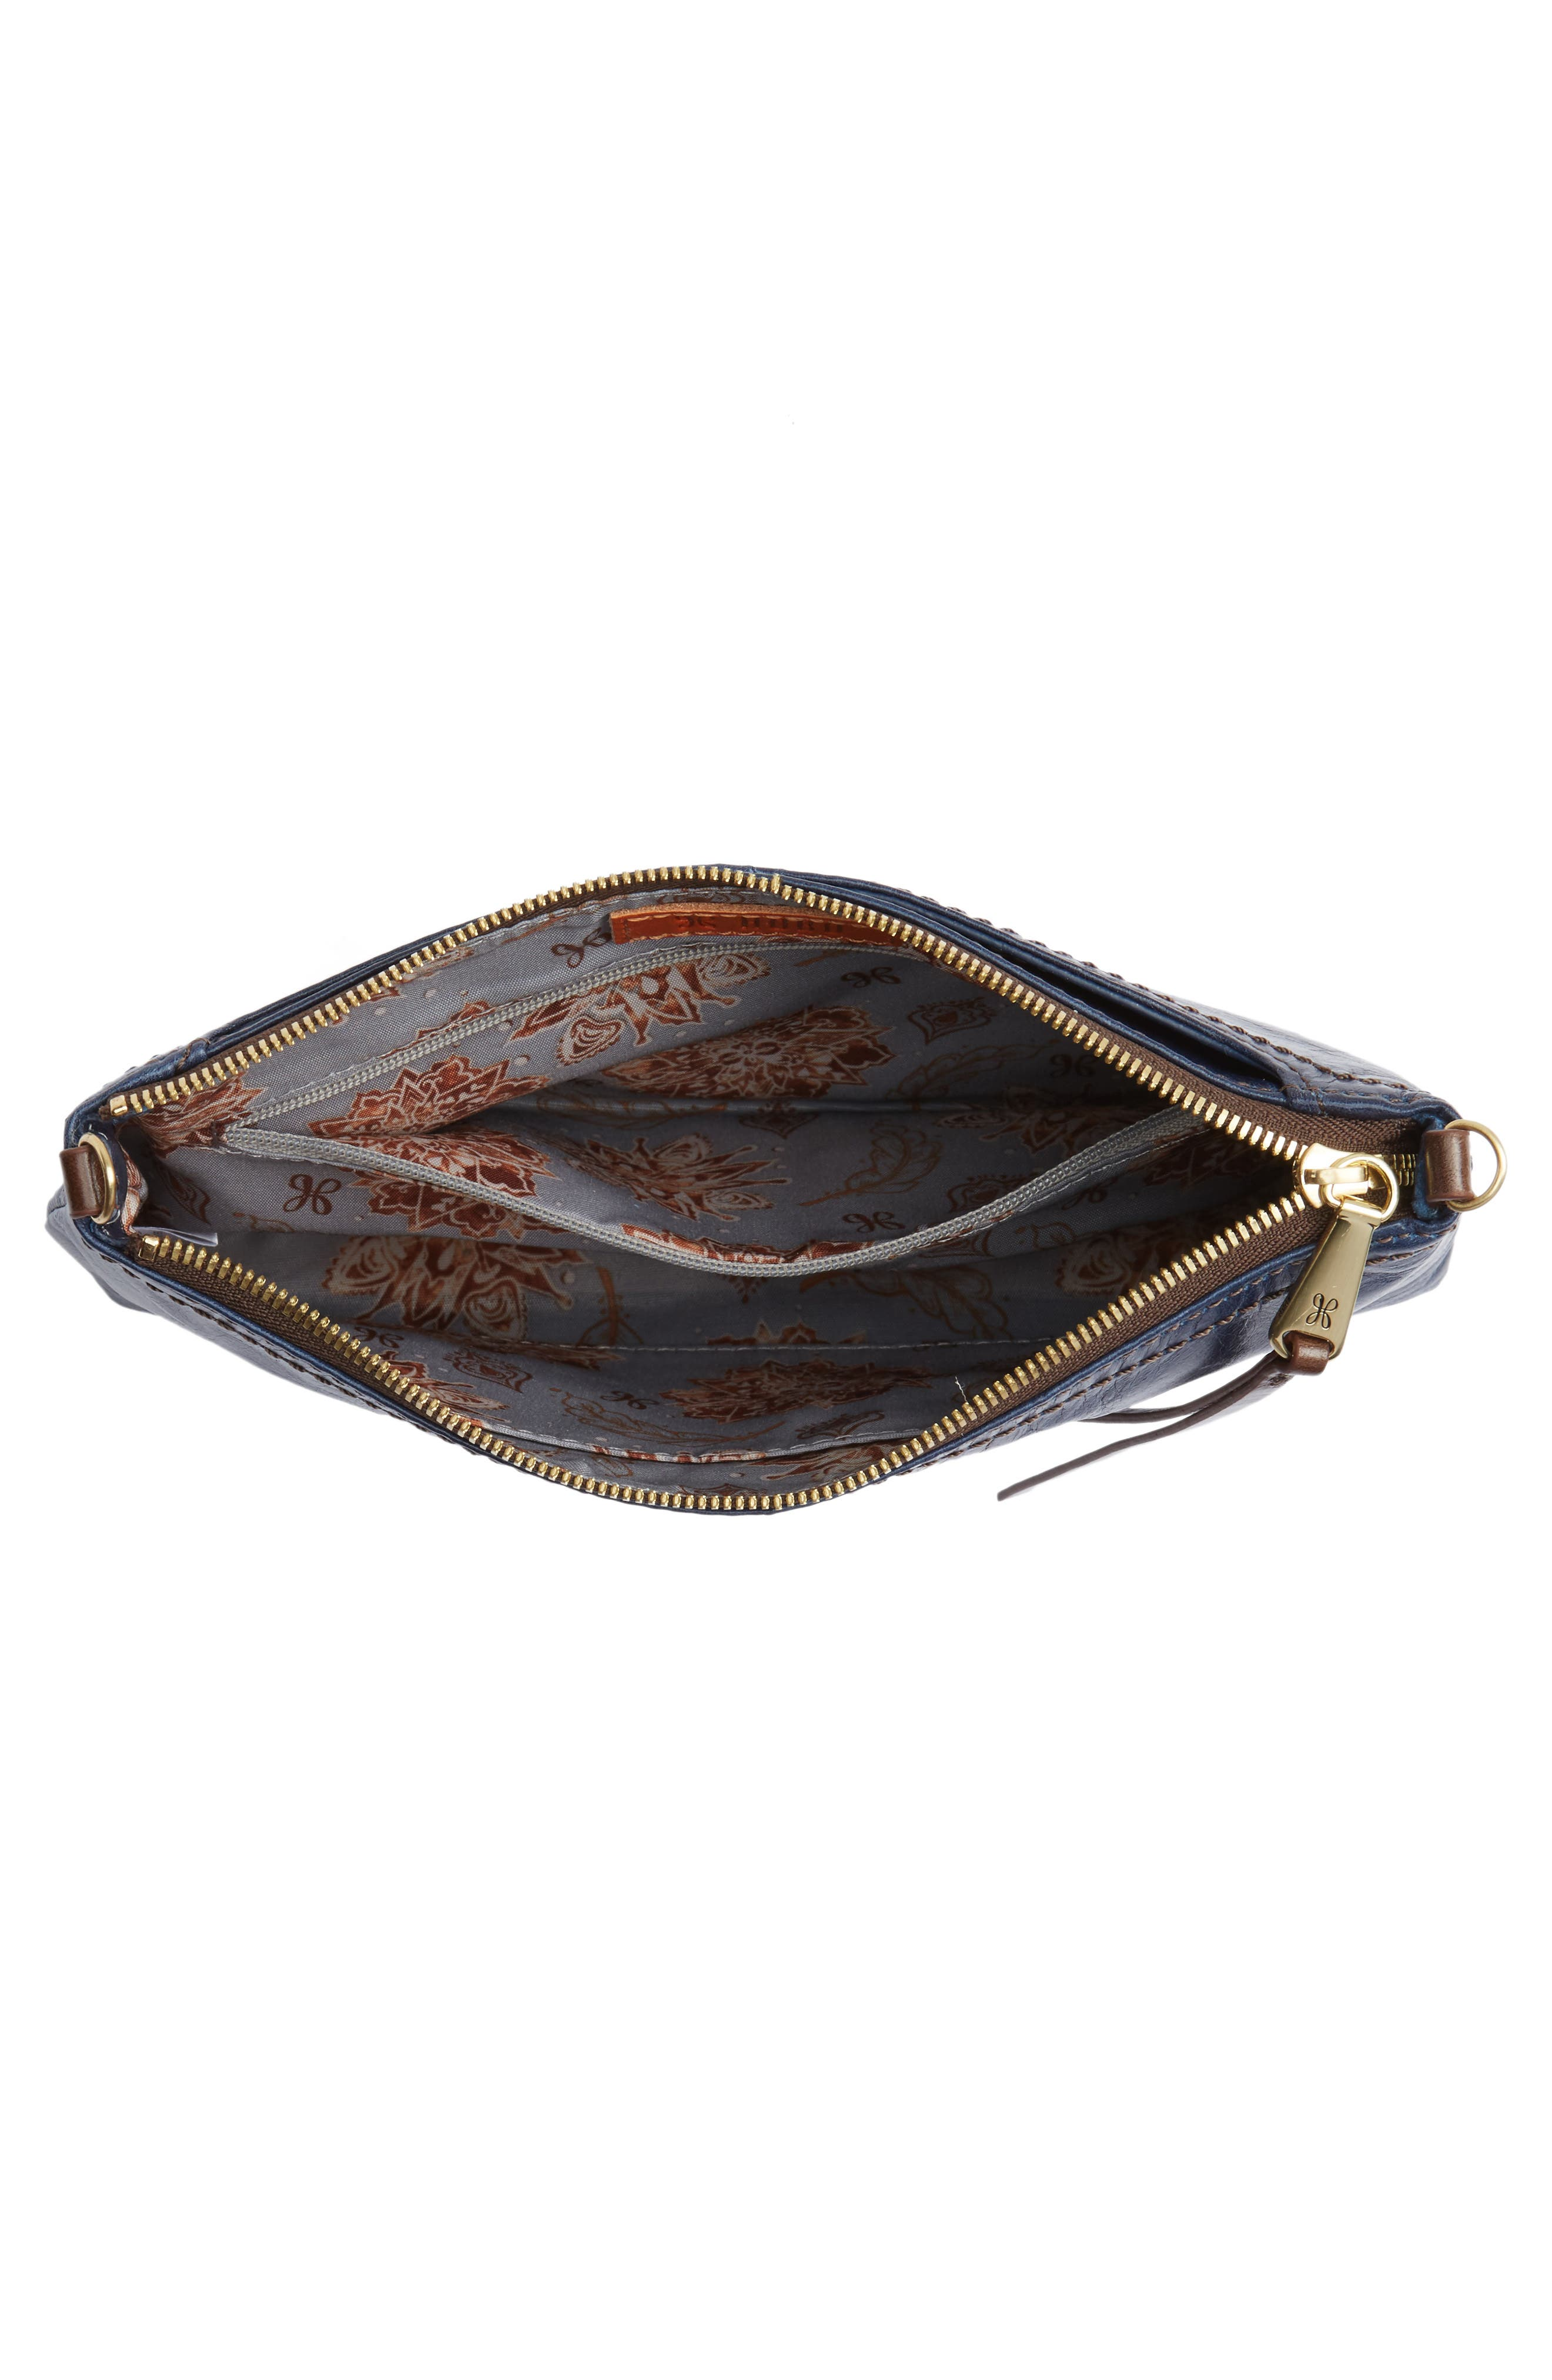 'Darcy' Leather Crossbody Bag,                             Alternate thumbnail 84, color,